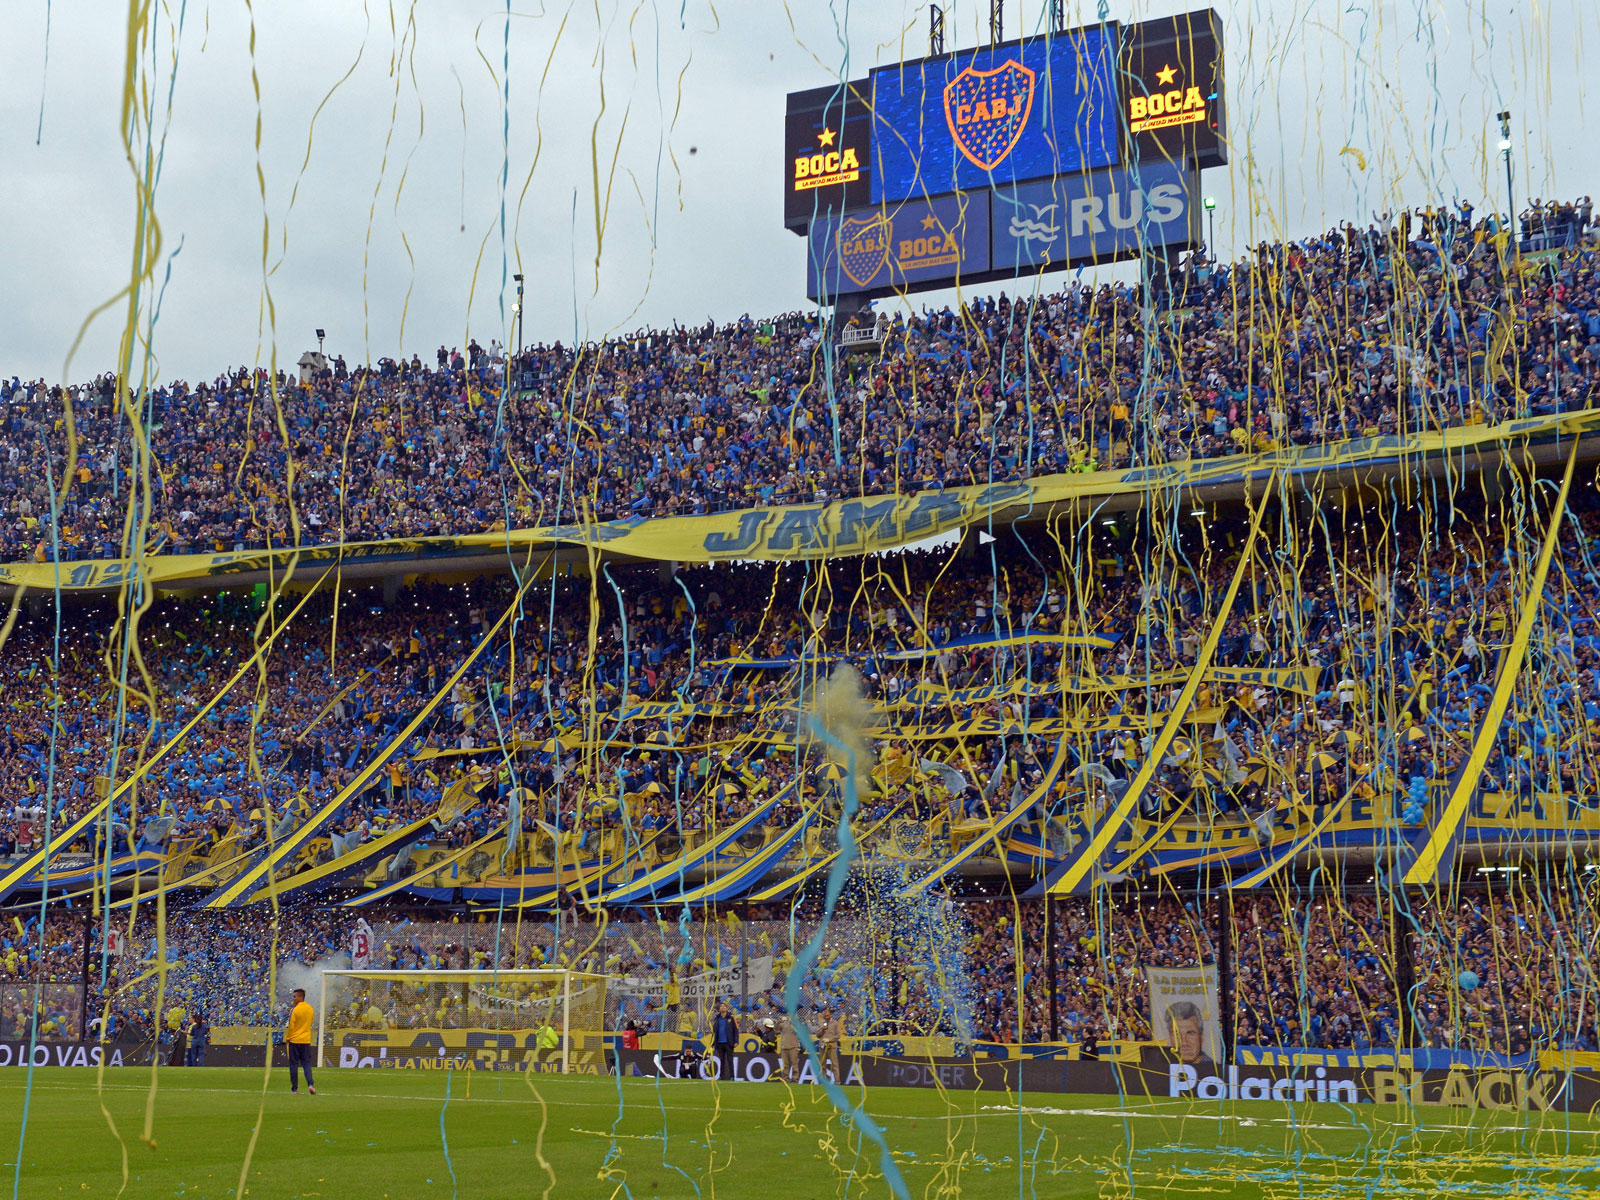 Boca Juniors: Boca Juniors Confidential: Review Of Netflix Series On